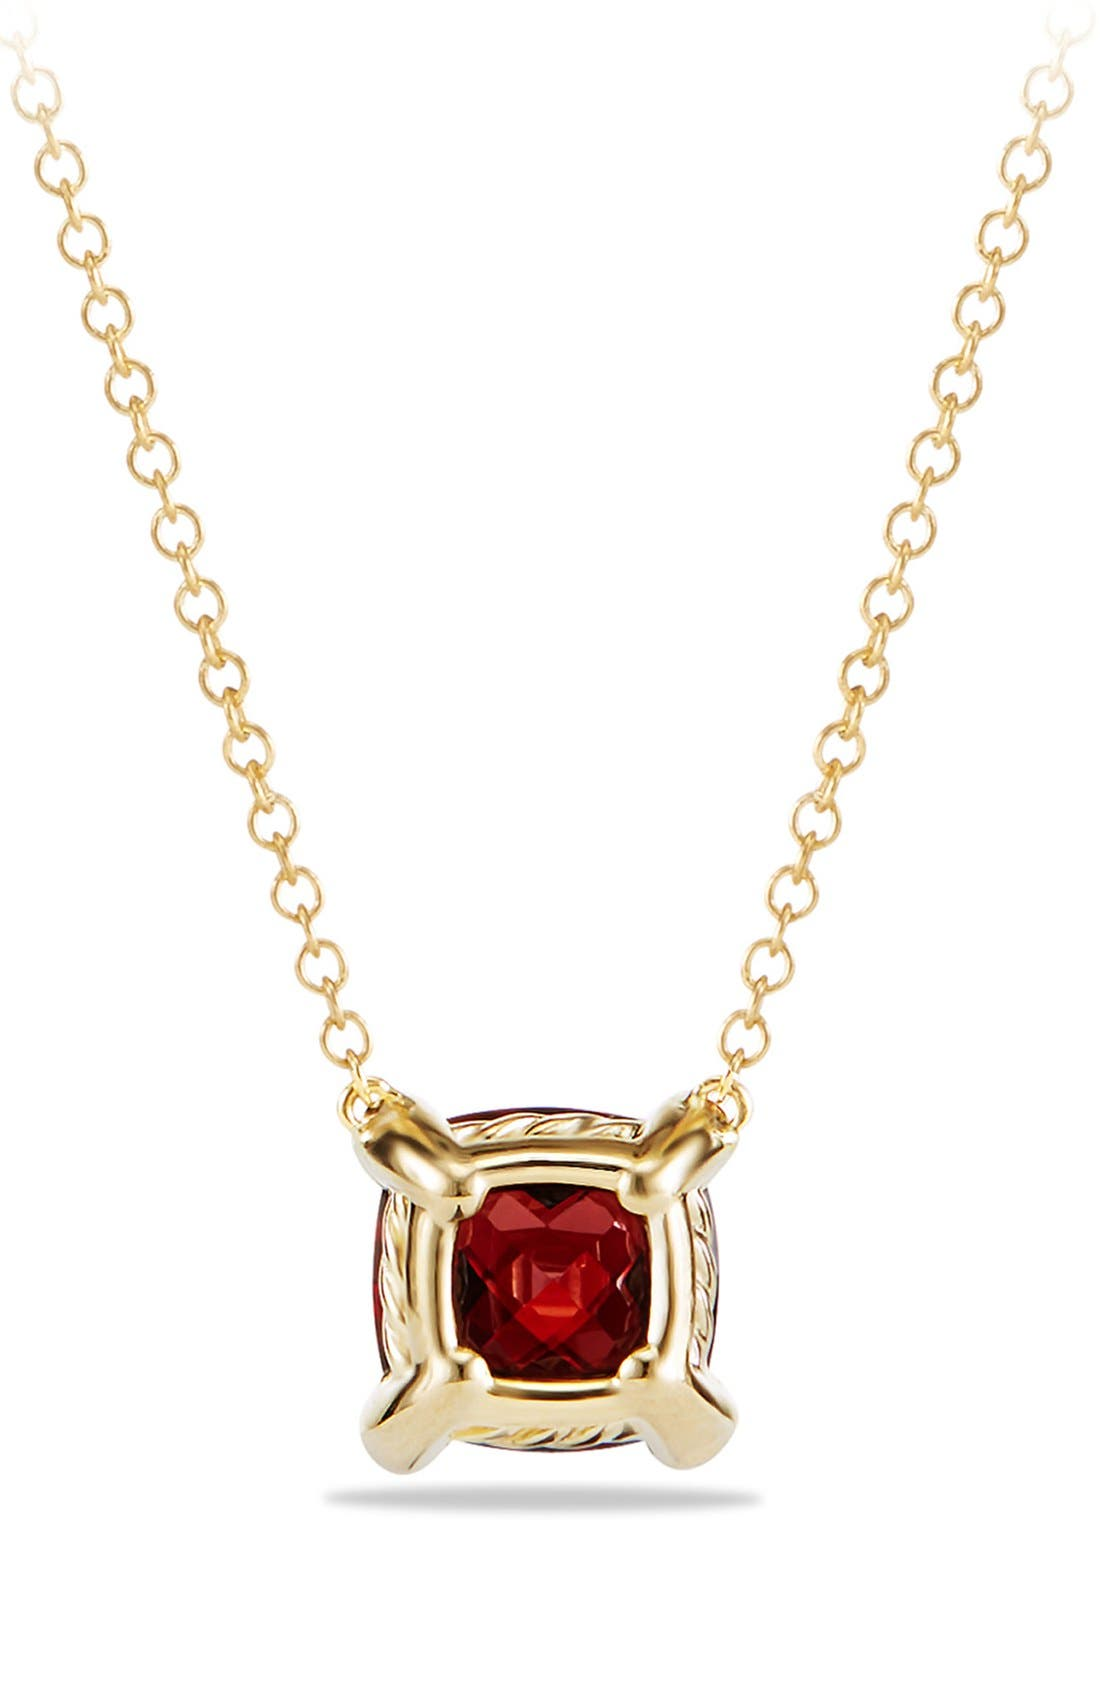 'Châtelaine' Pendant Necklace with Semiprecious Stone and Diamonds in 18K Gold,                             Alternate thumbnail 3, color,                             Garnet